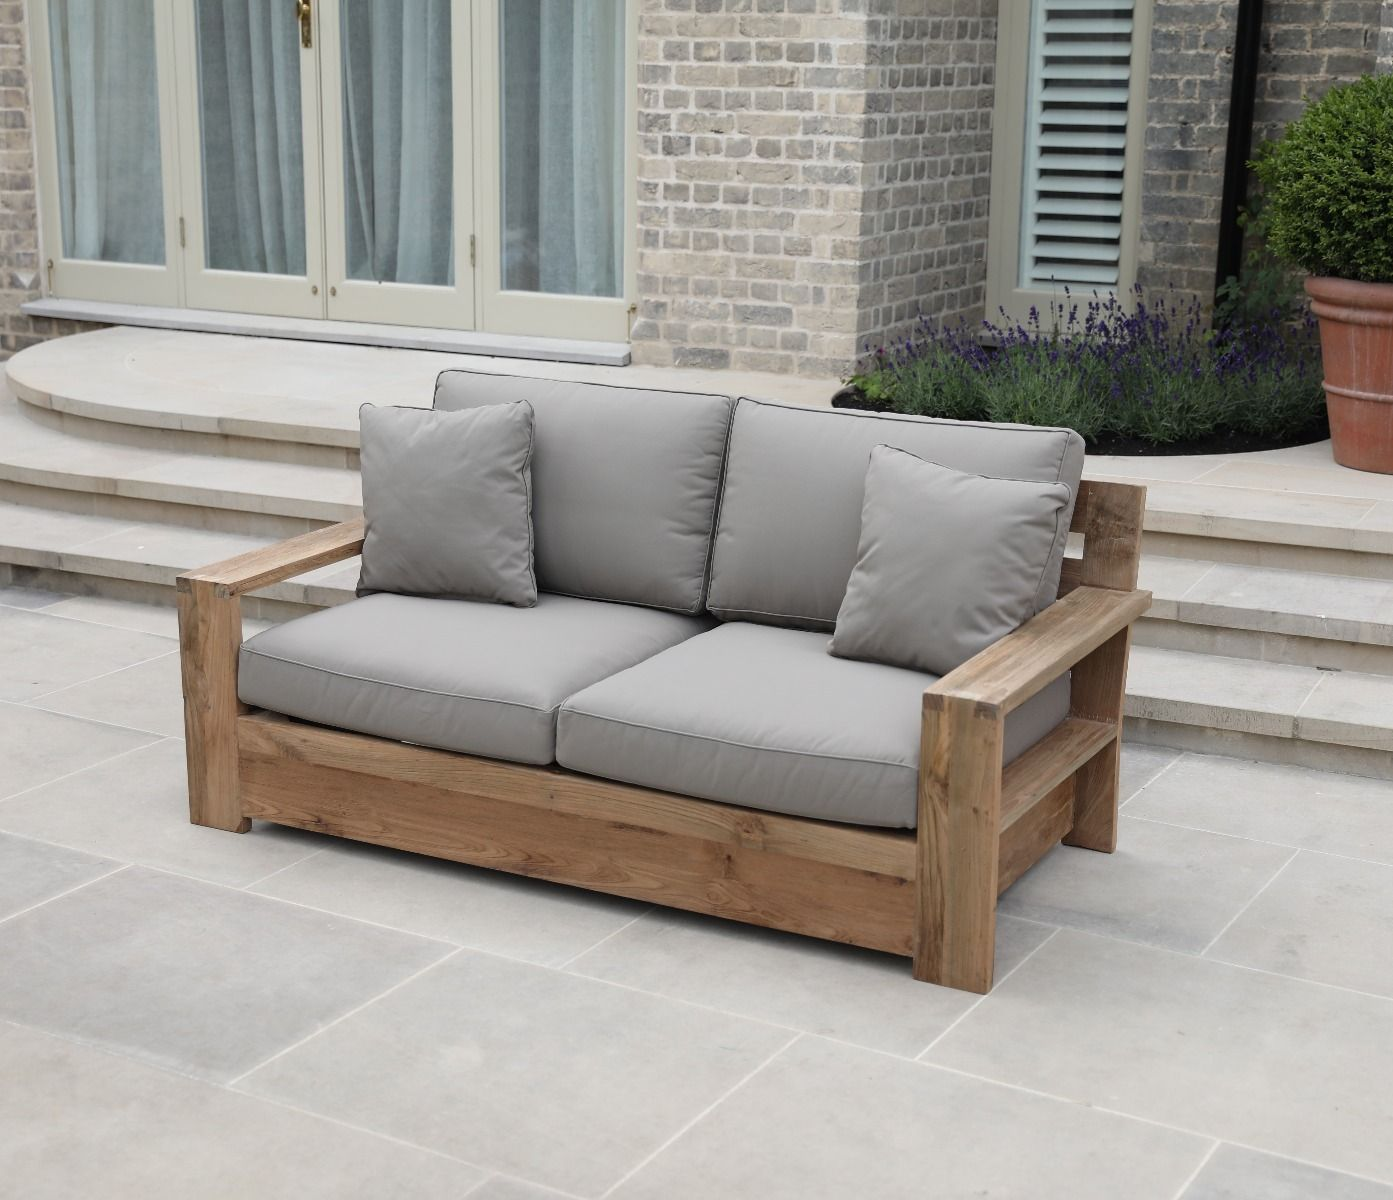 Tuscan Reclaimed Two Seater Outdoor Sofa